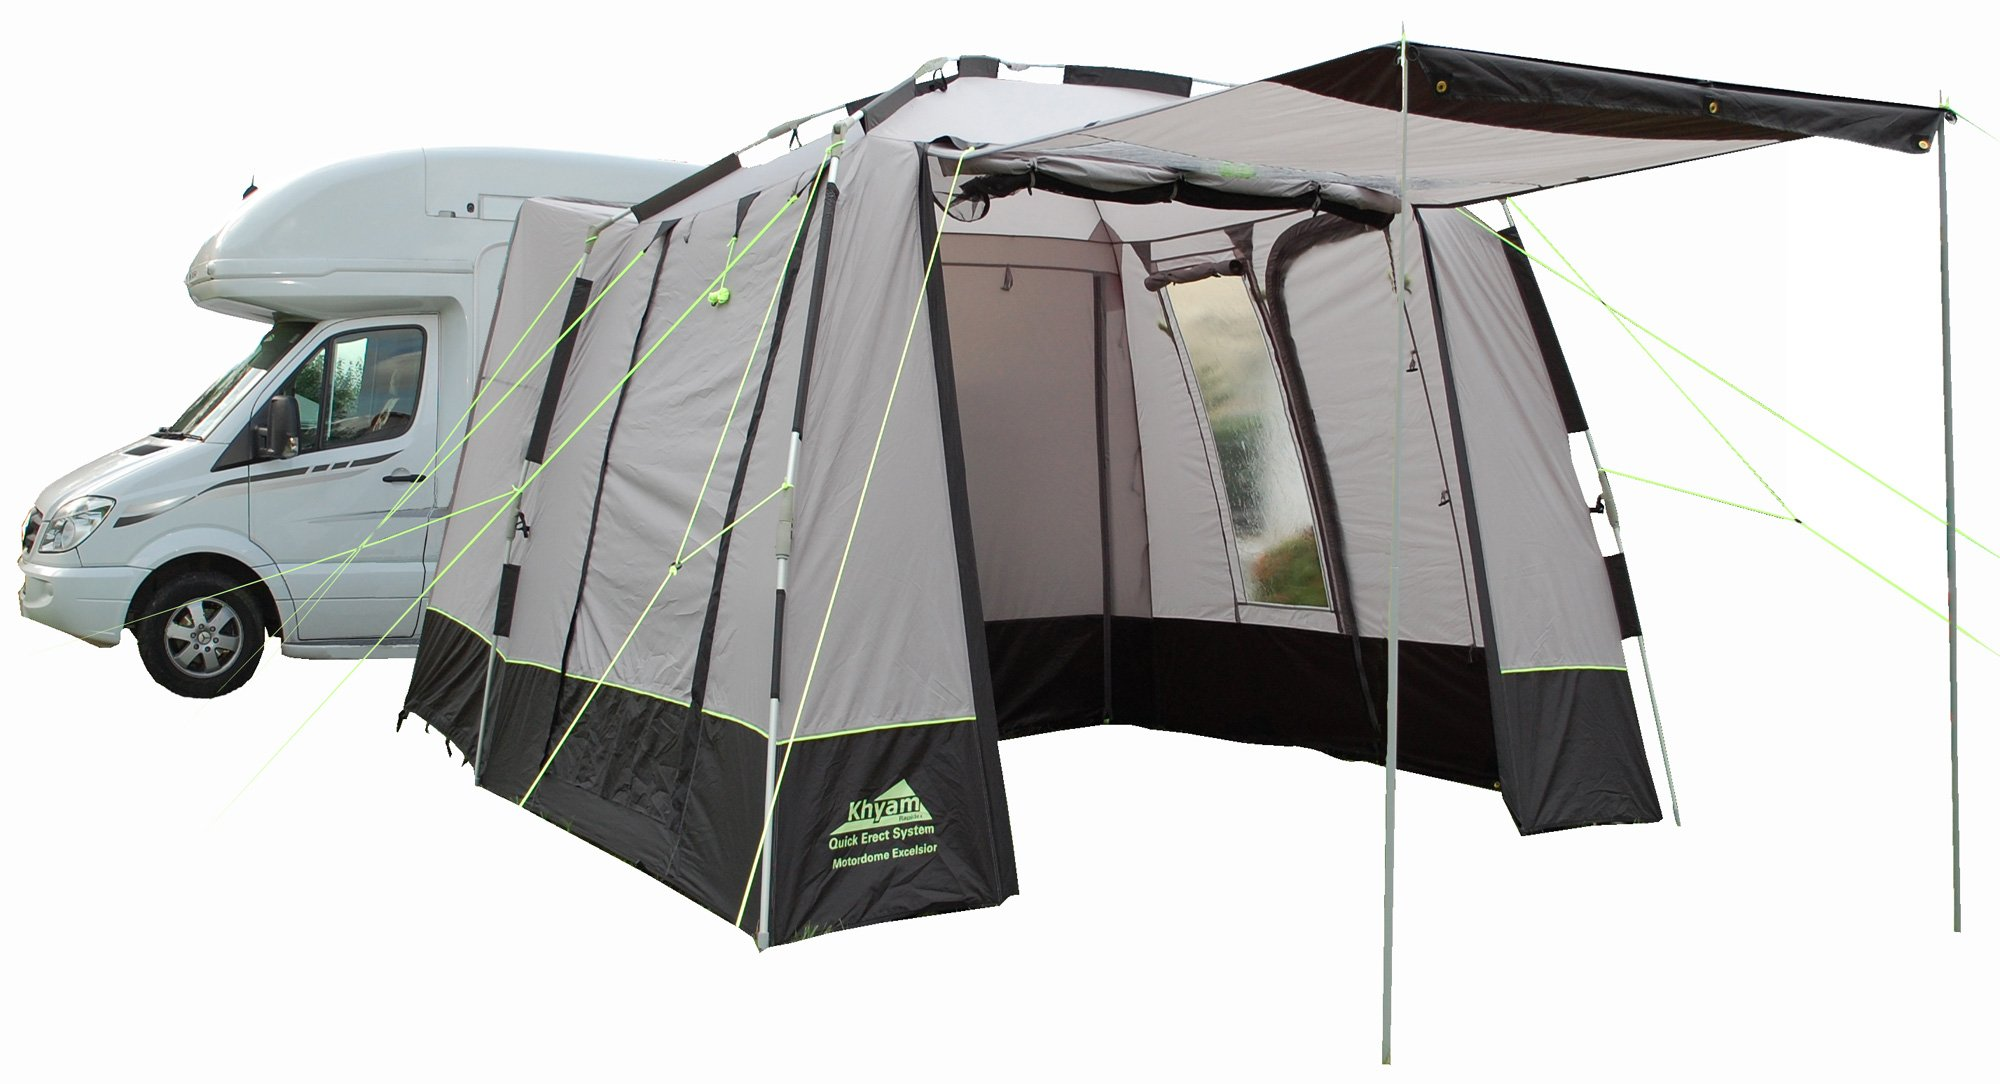 Khyam Motordome Excelsior 780 Quick Erect Driveaway Awning